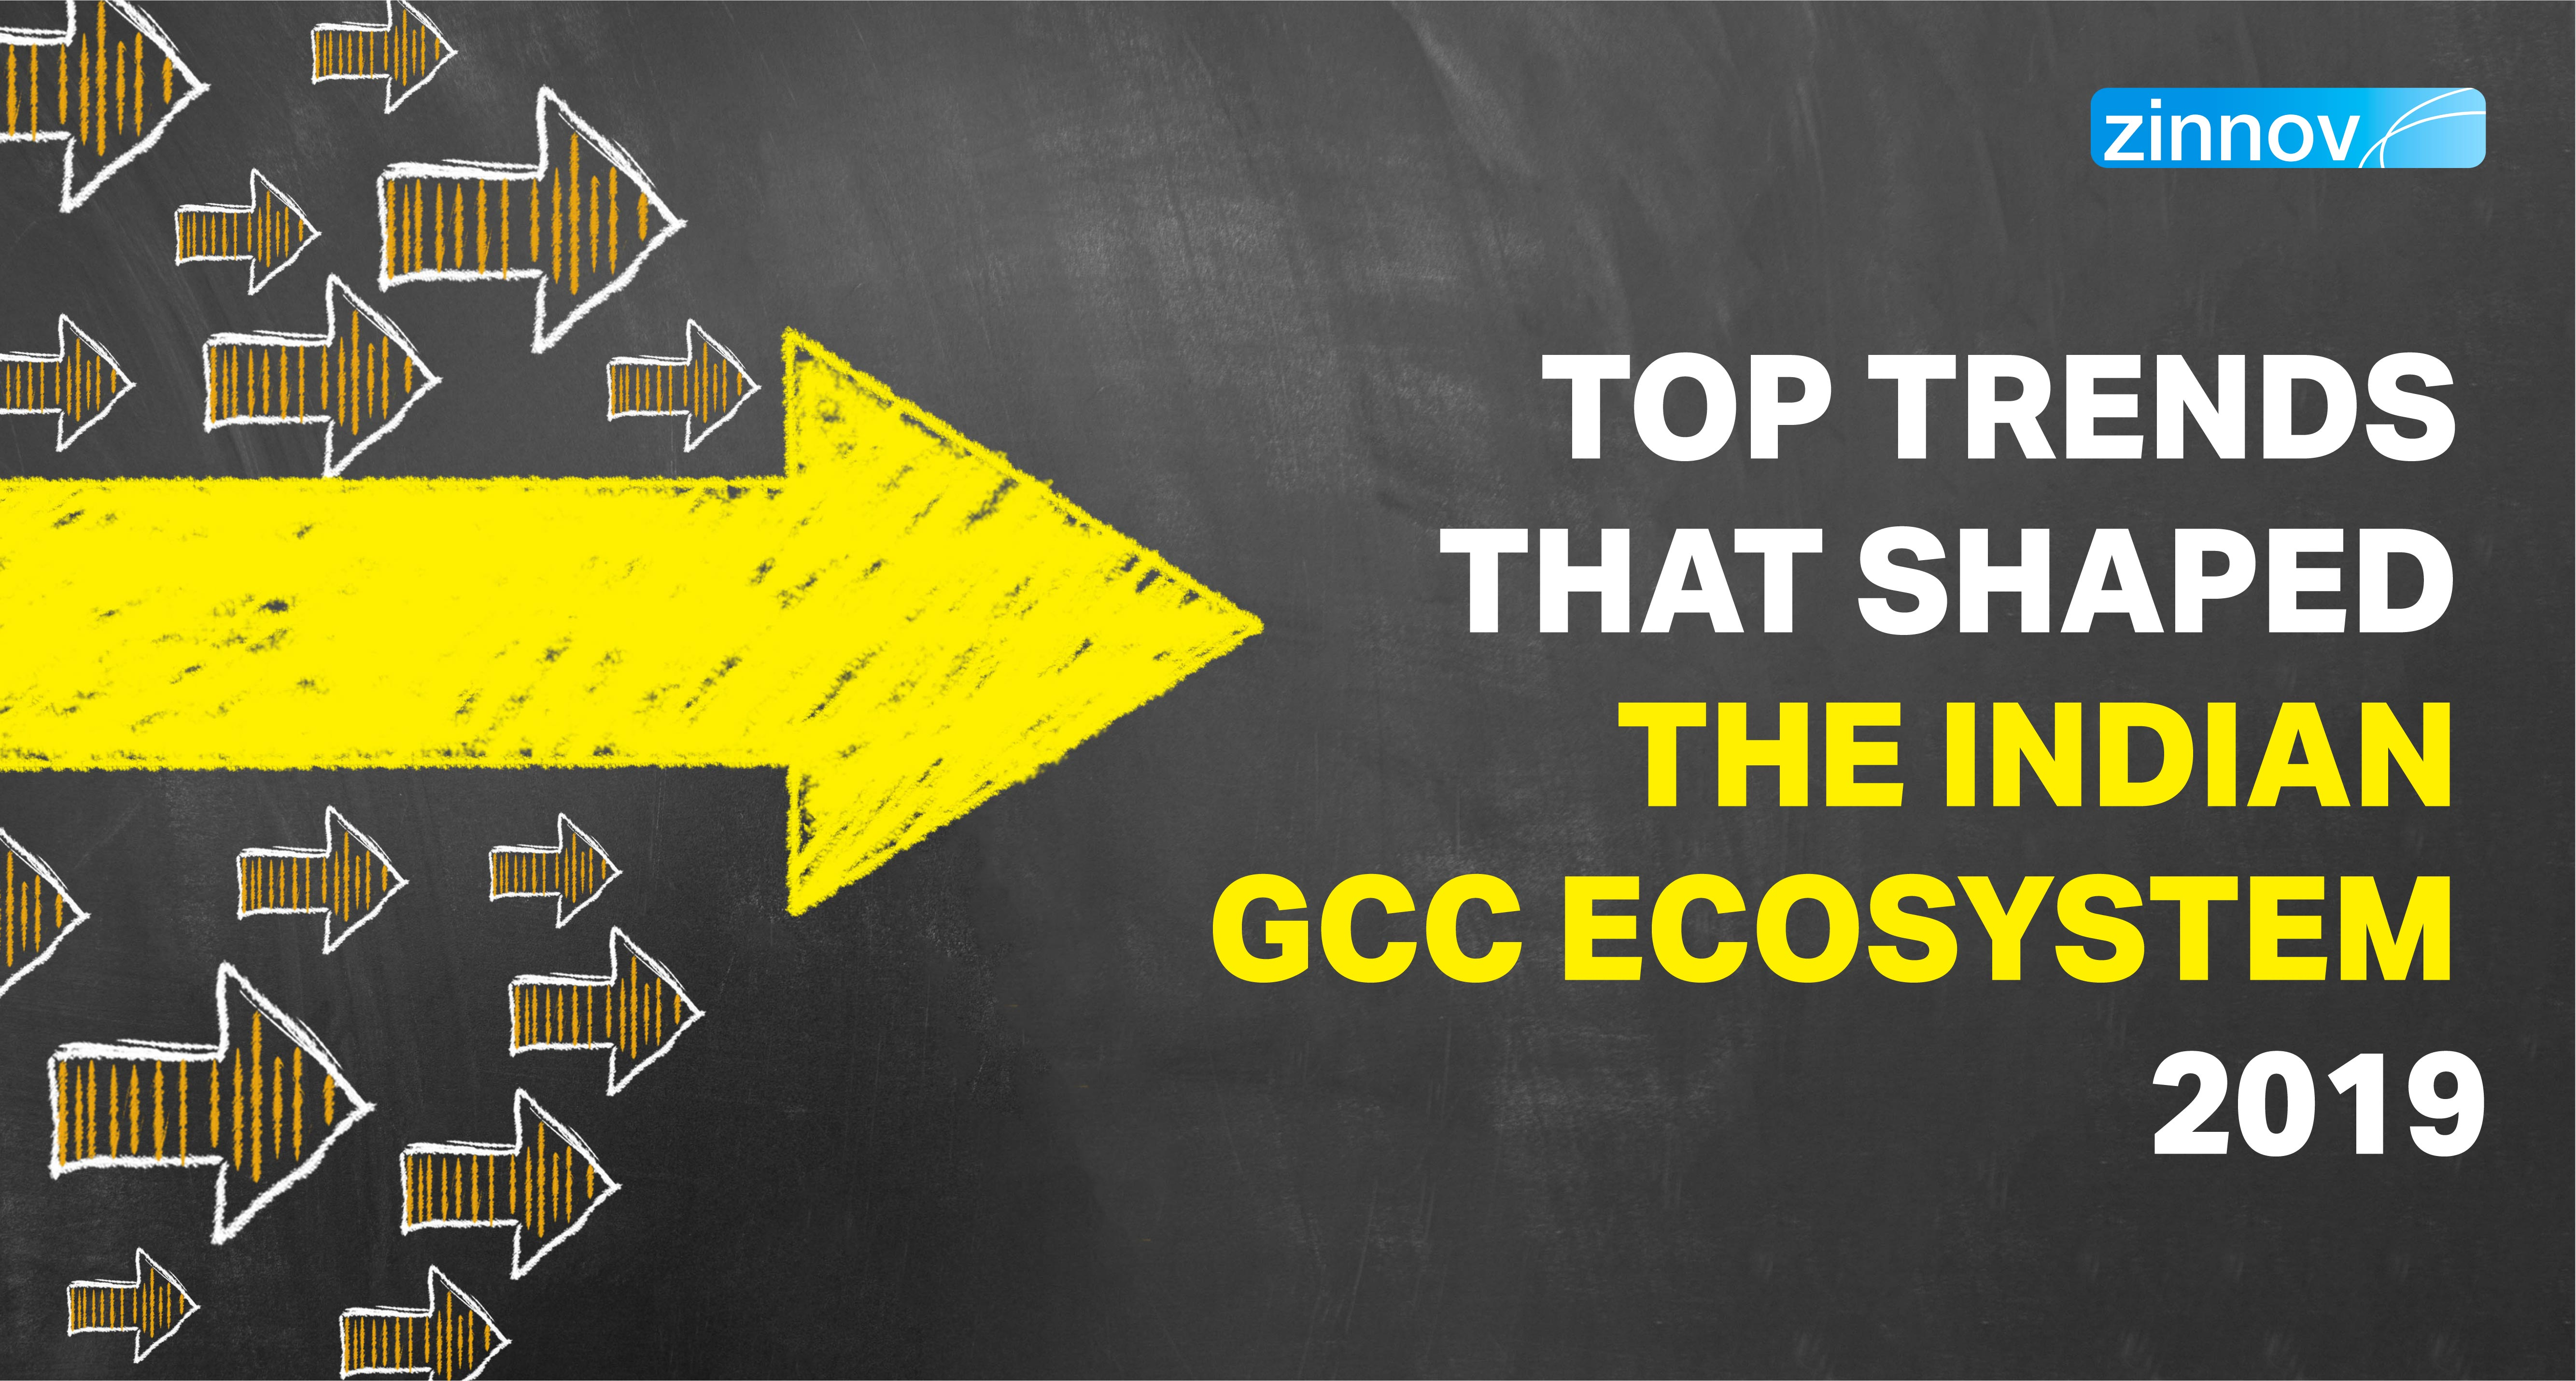 Top 5 Trends That Shaped GCCs in India In 2019